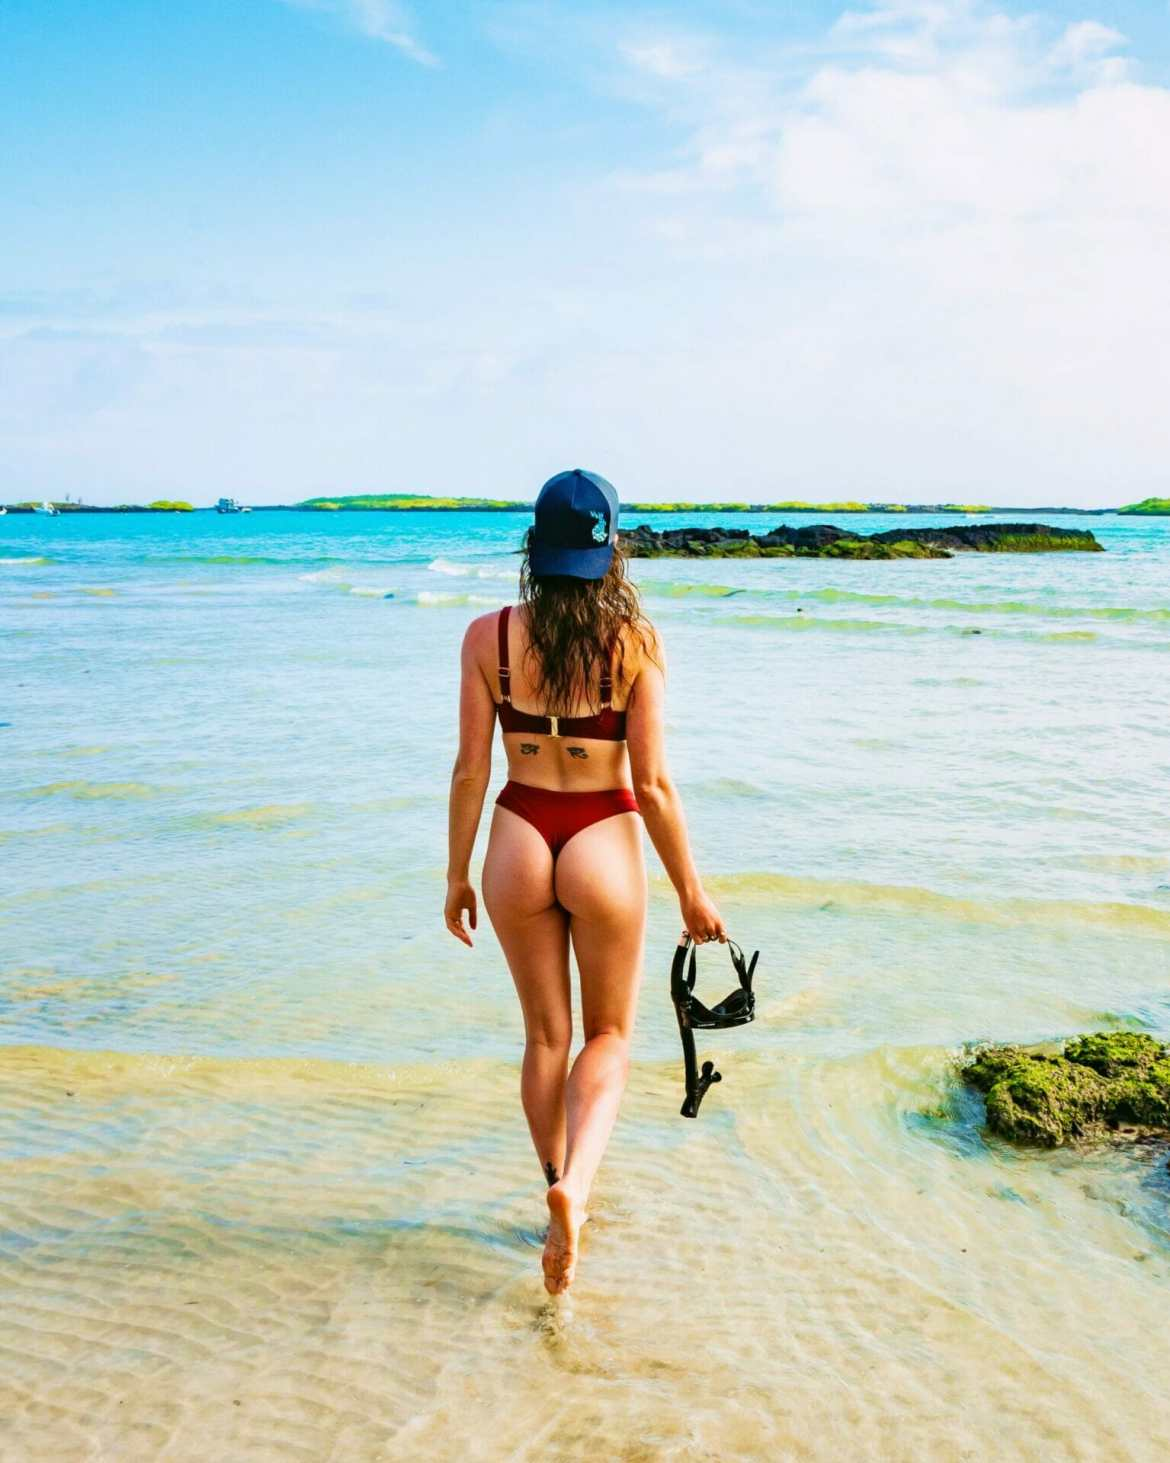 Girl with snorkel walking on beach into ocean Galápagos